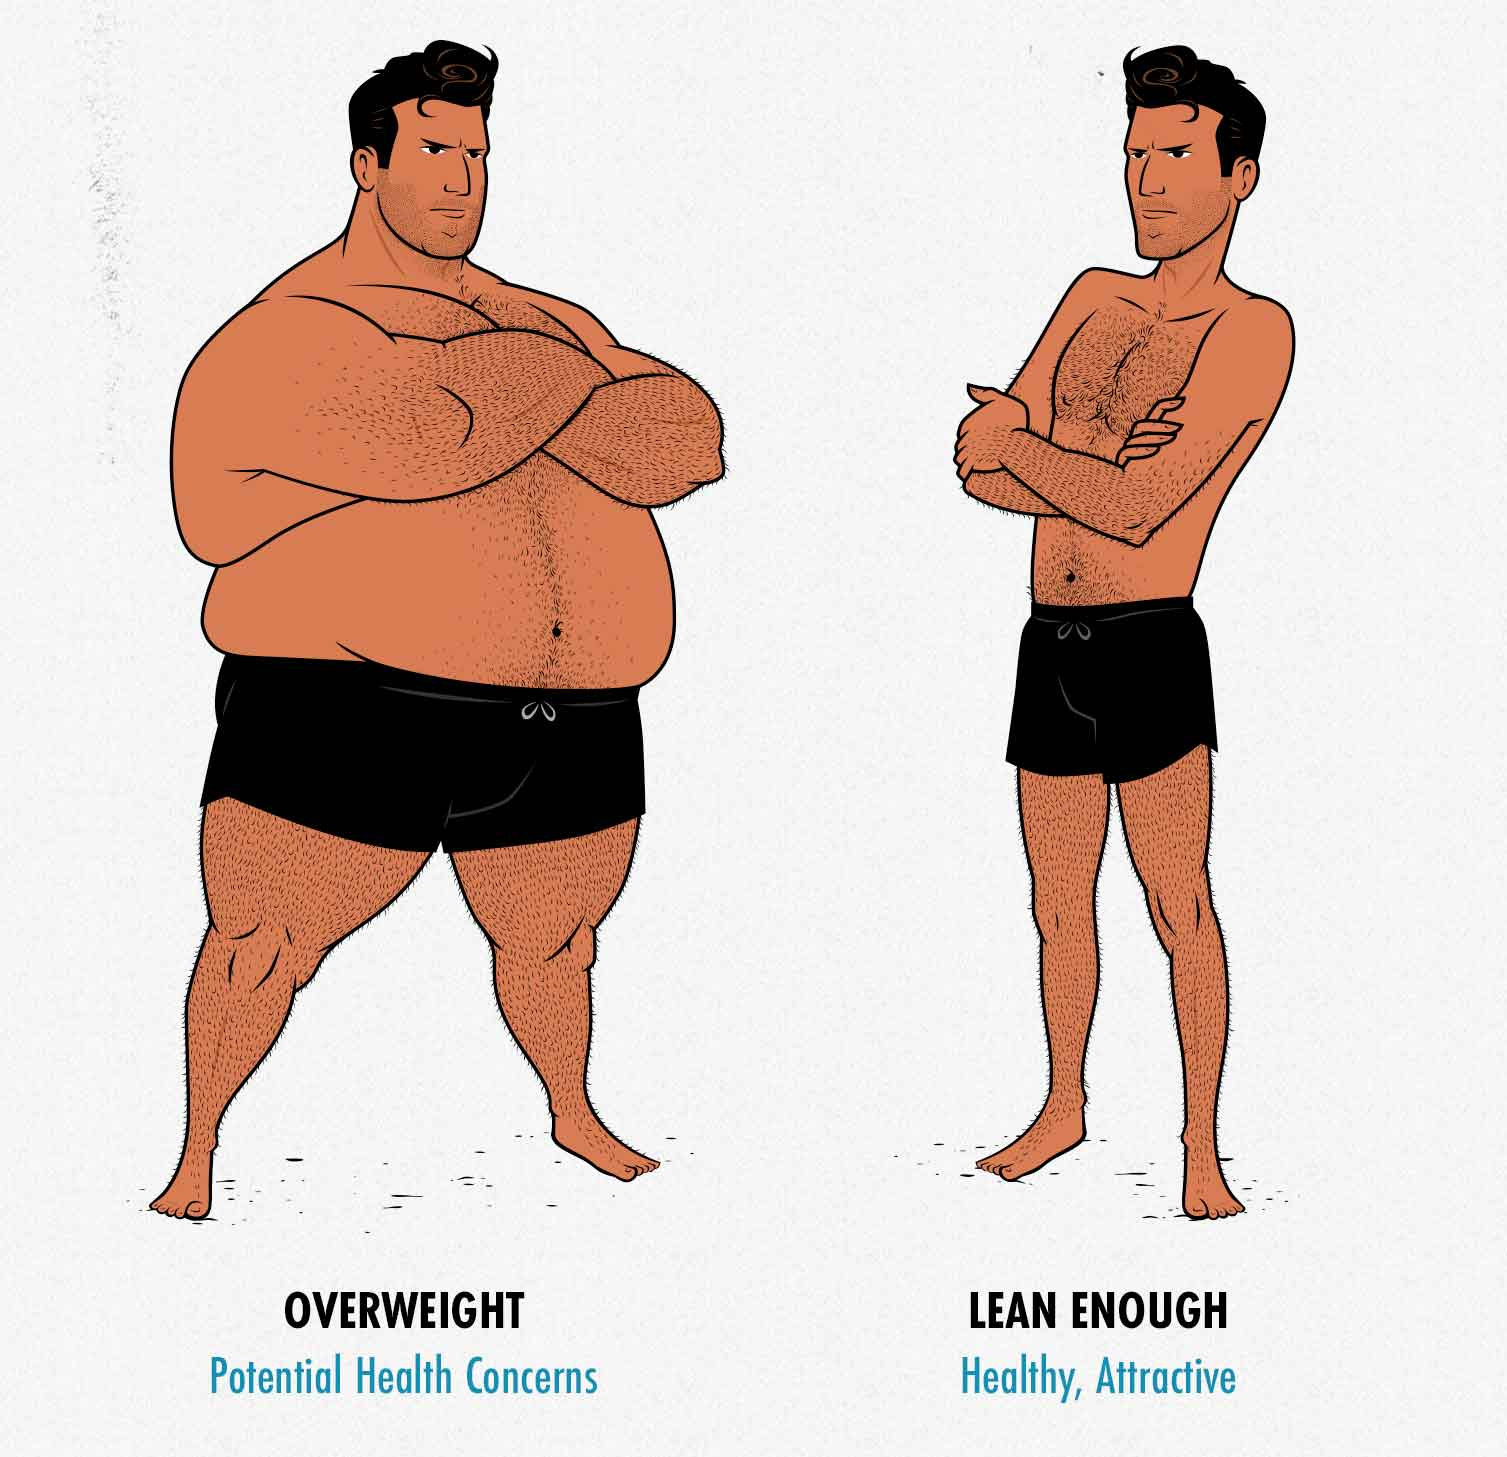 Illustration showing the ideal male body-fat percentage